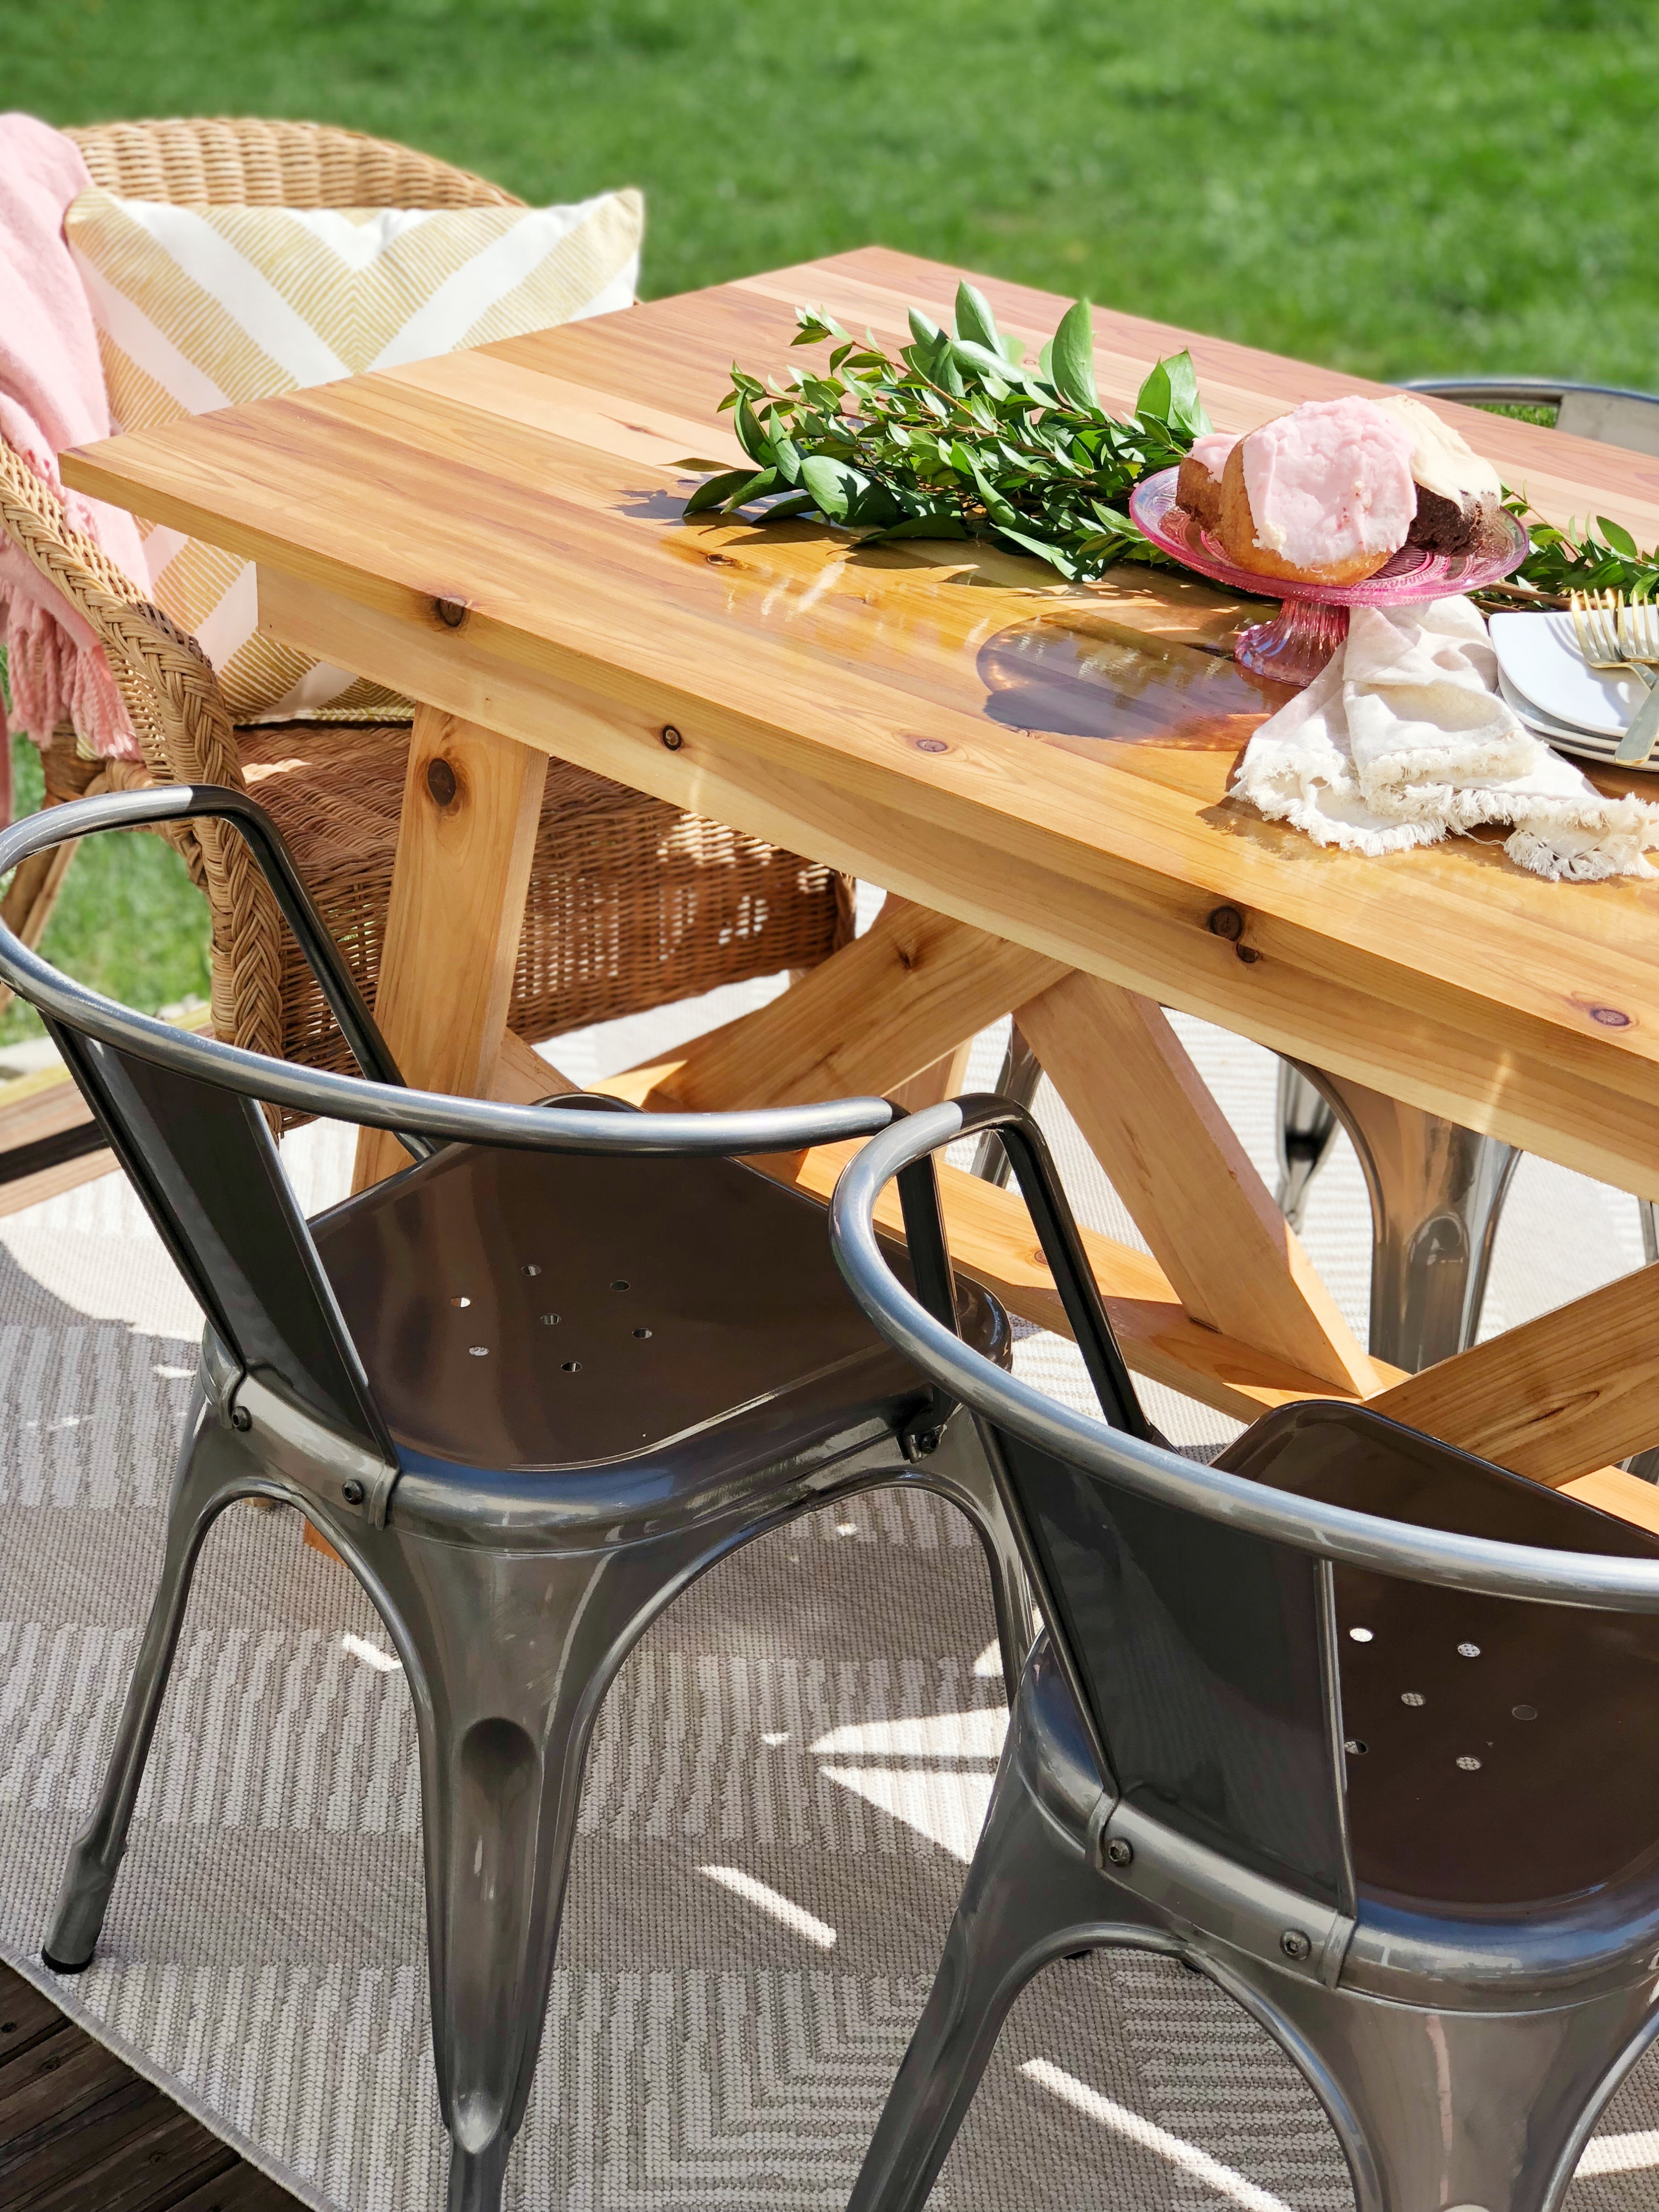 Outdoor Table With Walnut Creek Woodcrafts